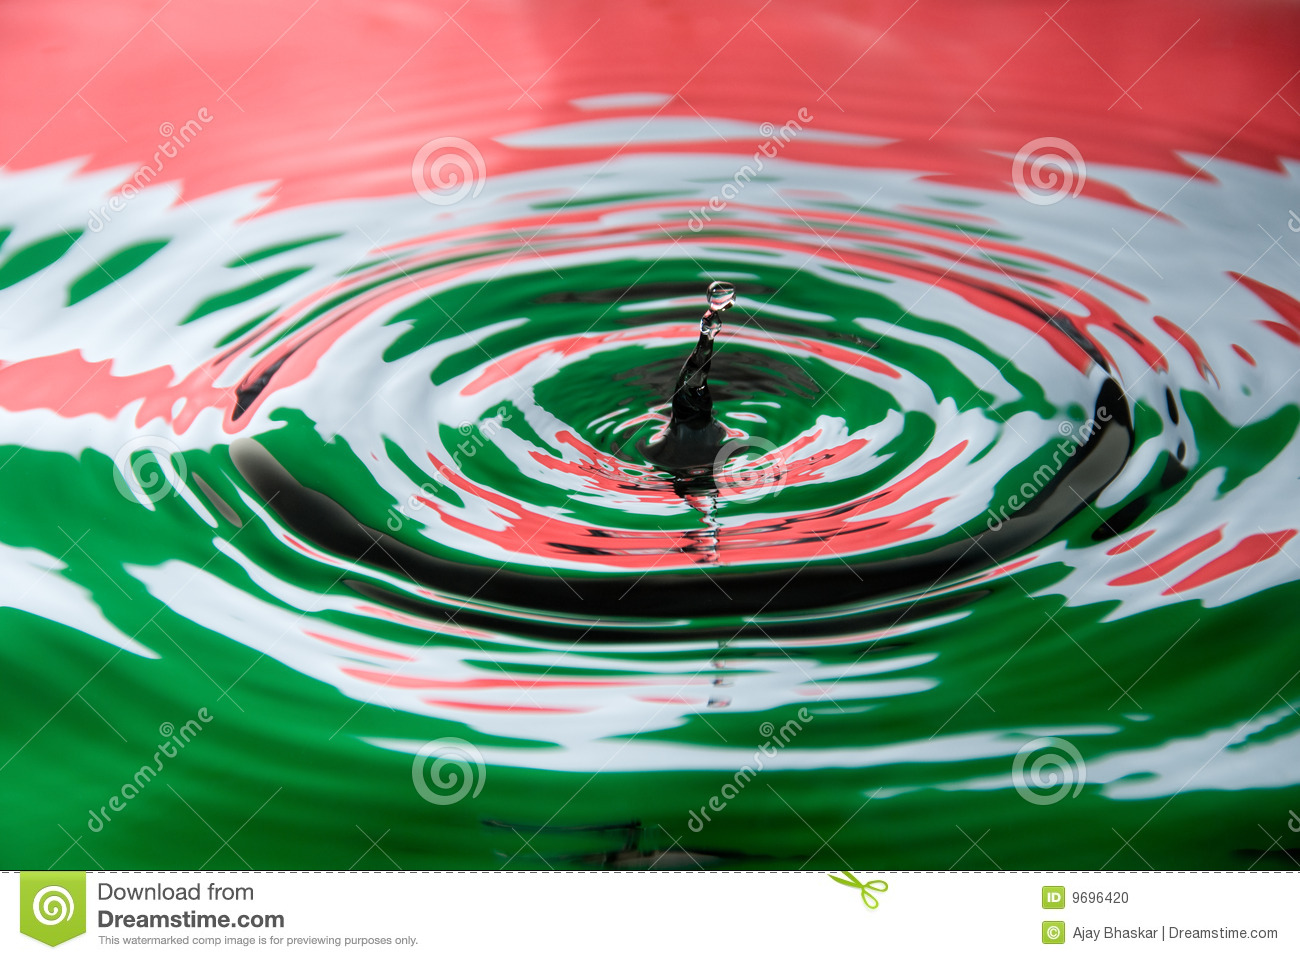 Water droplet against a Hungary flag